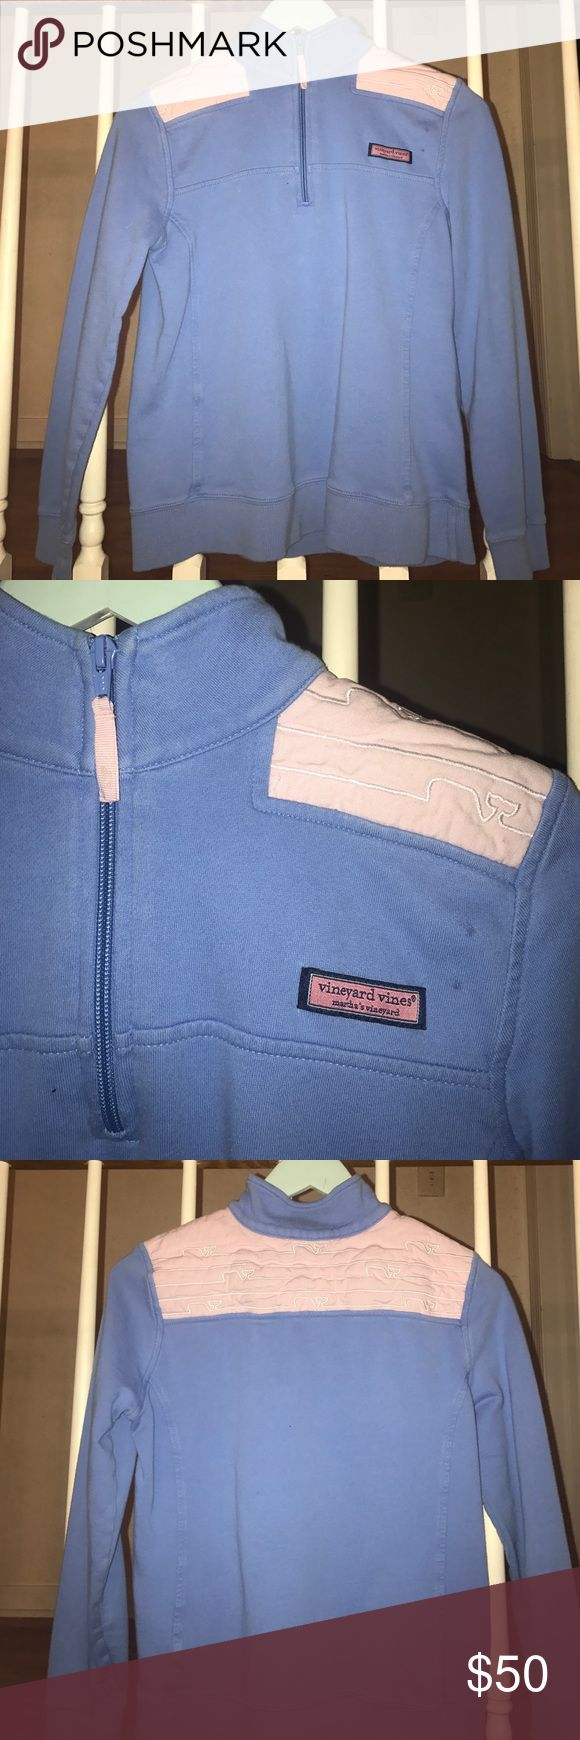 Baby blue vineyard vines shep shirt A baby blue vineyard vines shep shirt with light pink shoulder pads and white detailing in the shape of whales-size small, fits like an extra small. Super fun in the summer months with shorts or jeans, completes your preppy look dressed up or down :) Vineyard Vines Sweaters